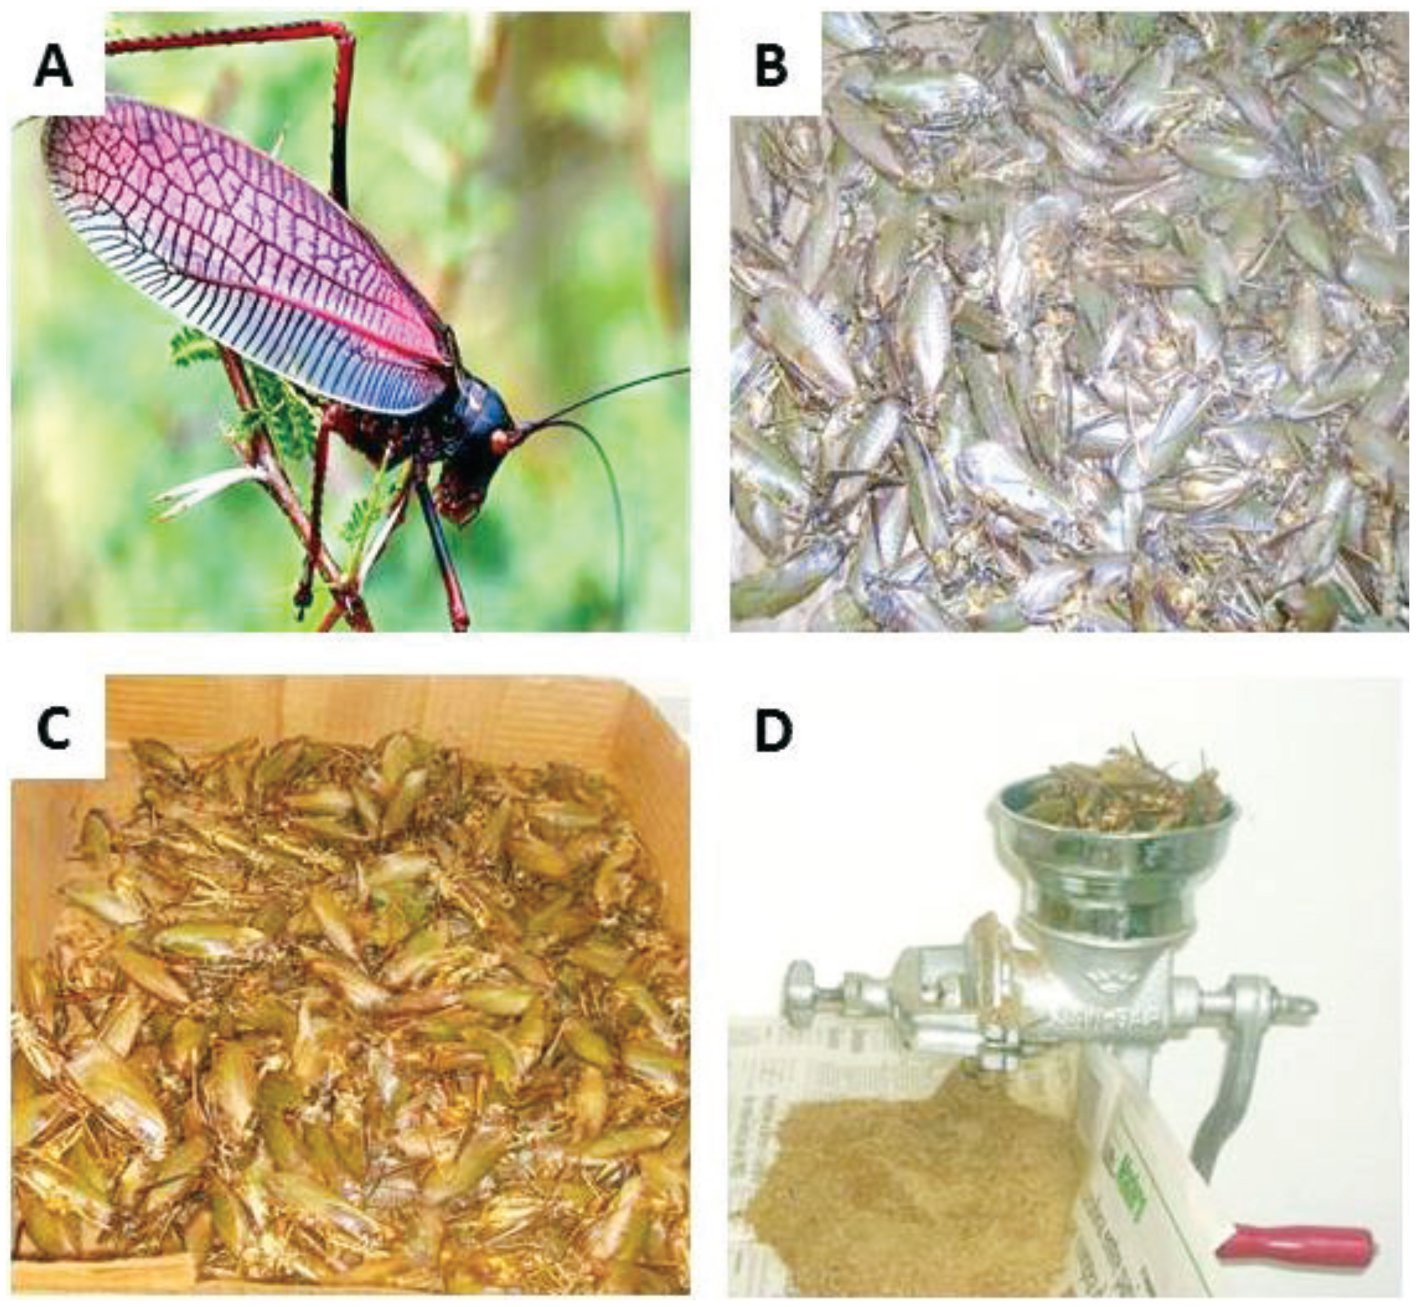 Evaluation of Biochemical Components from Pterophylla